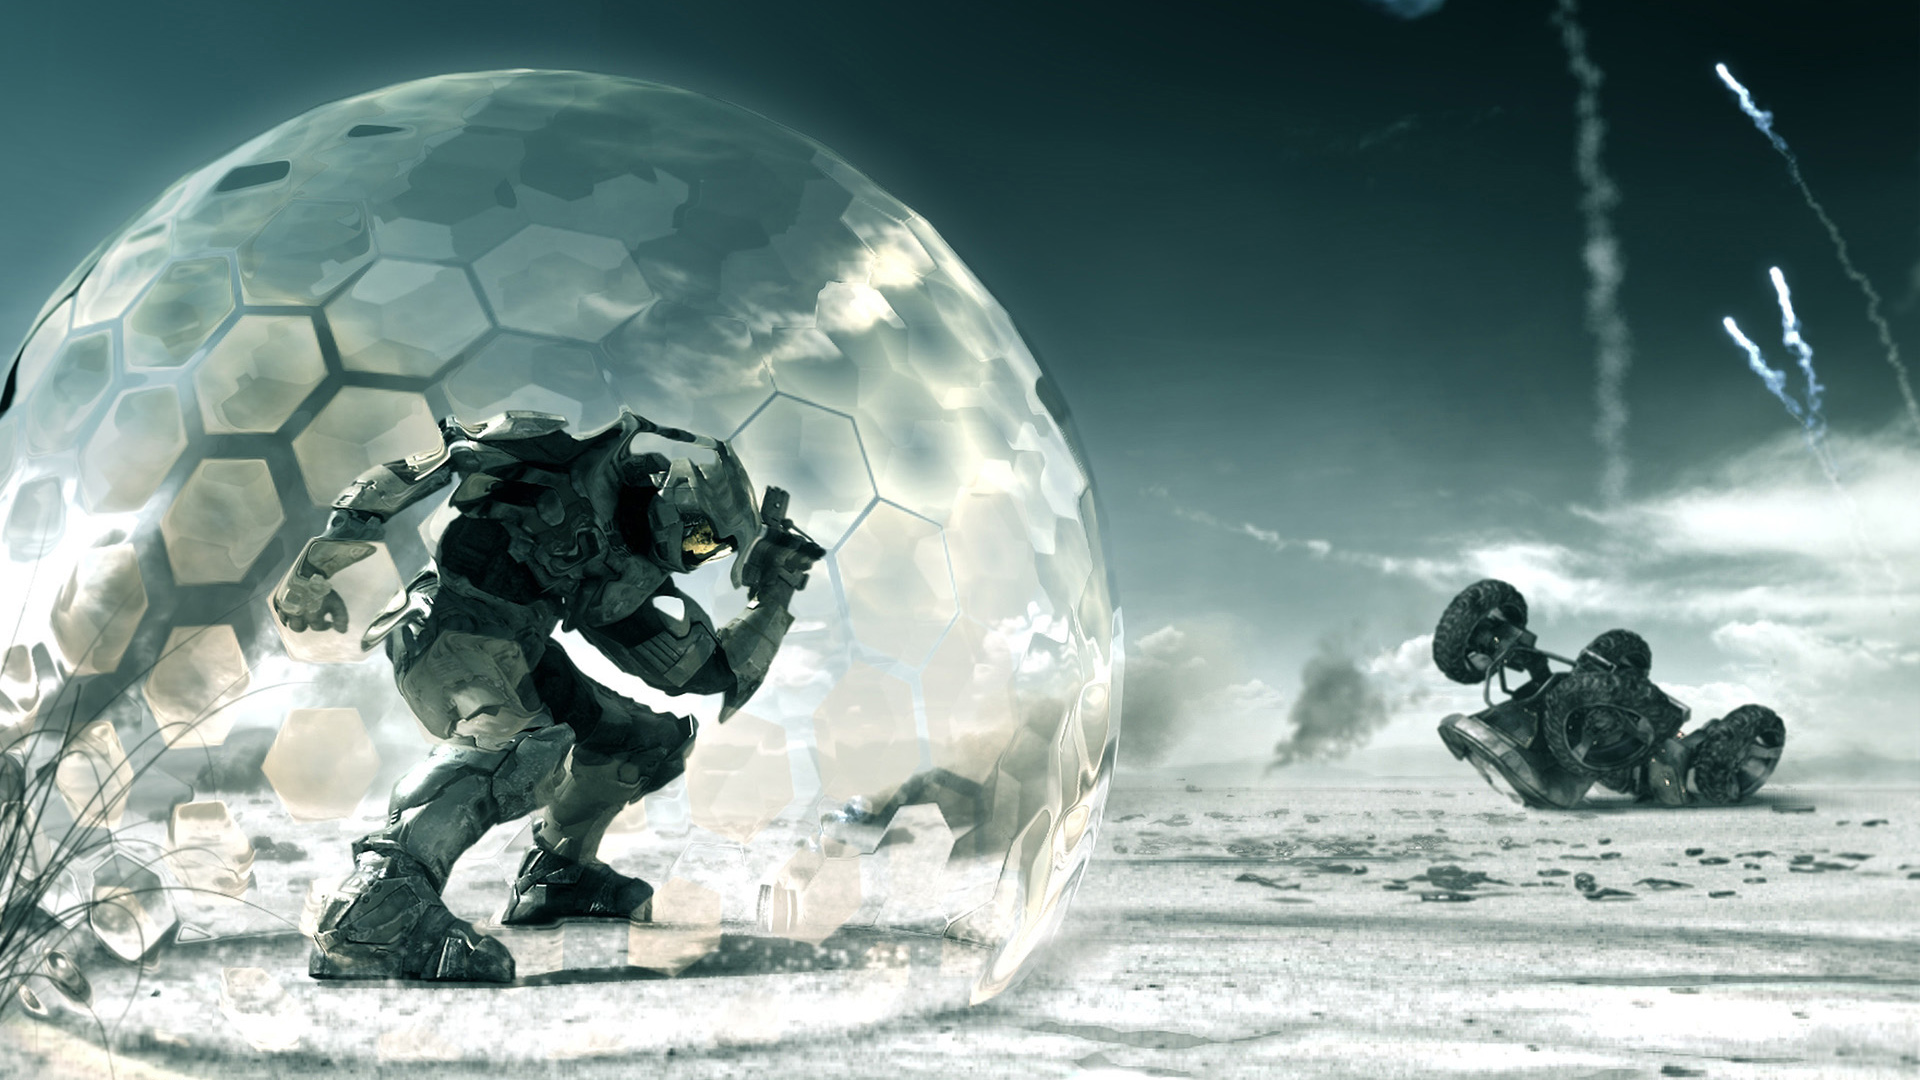 Halo 3 Wallpapers HD Wallpapers 1920x1080